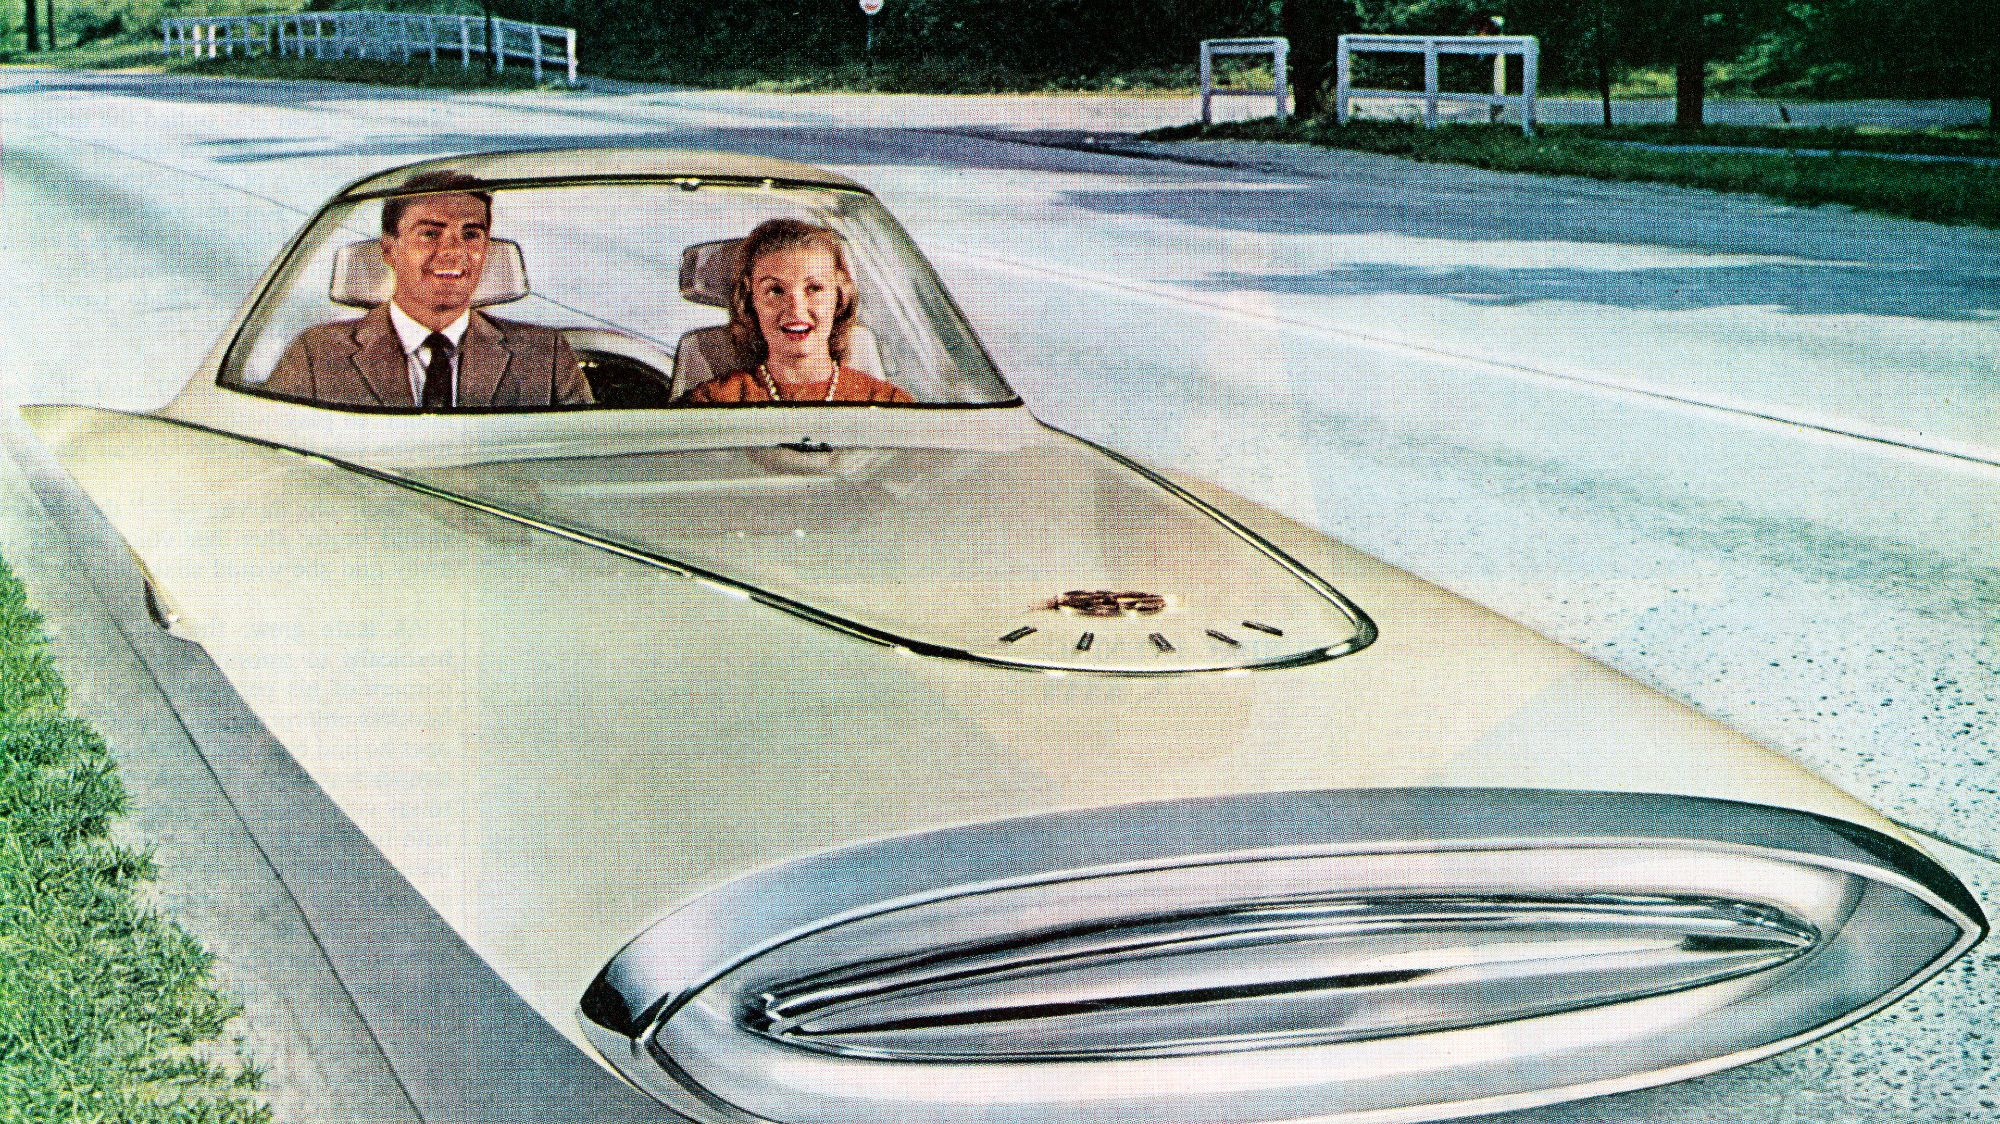 7 Early Attempts at Self-Driving Cars